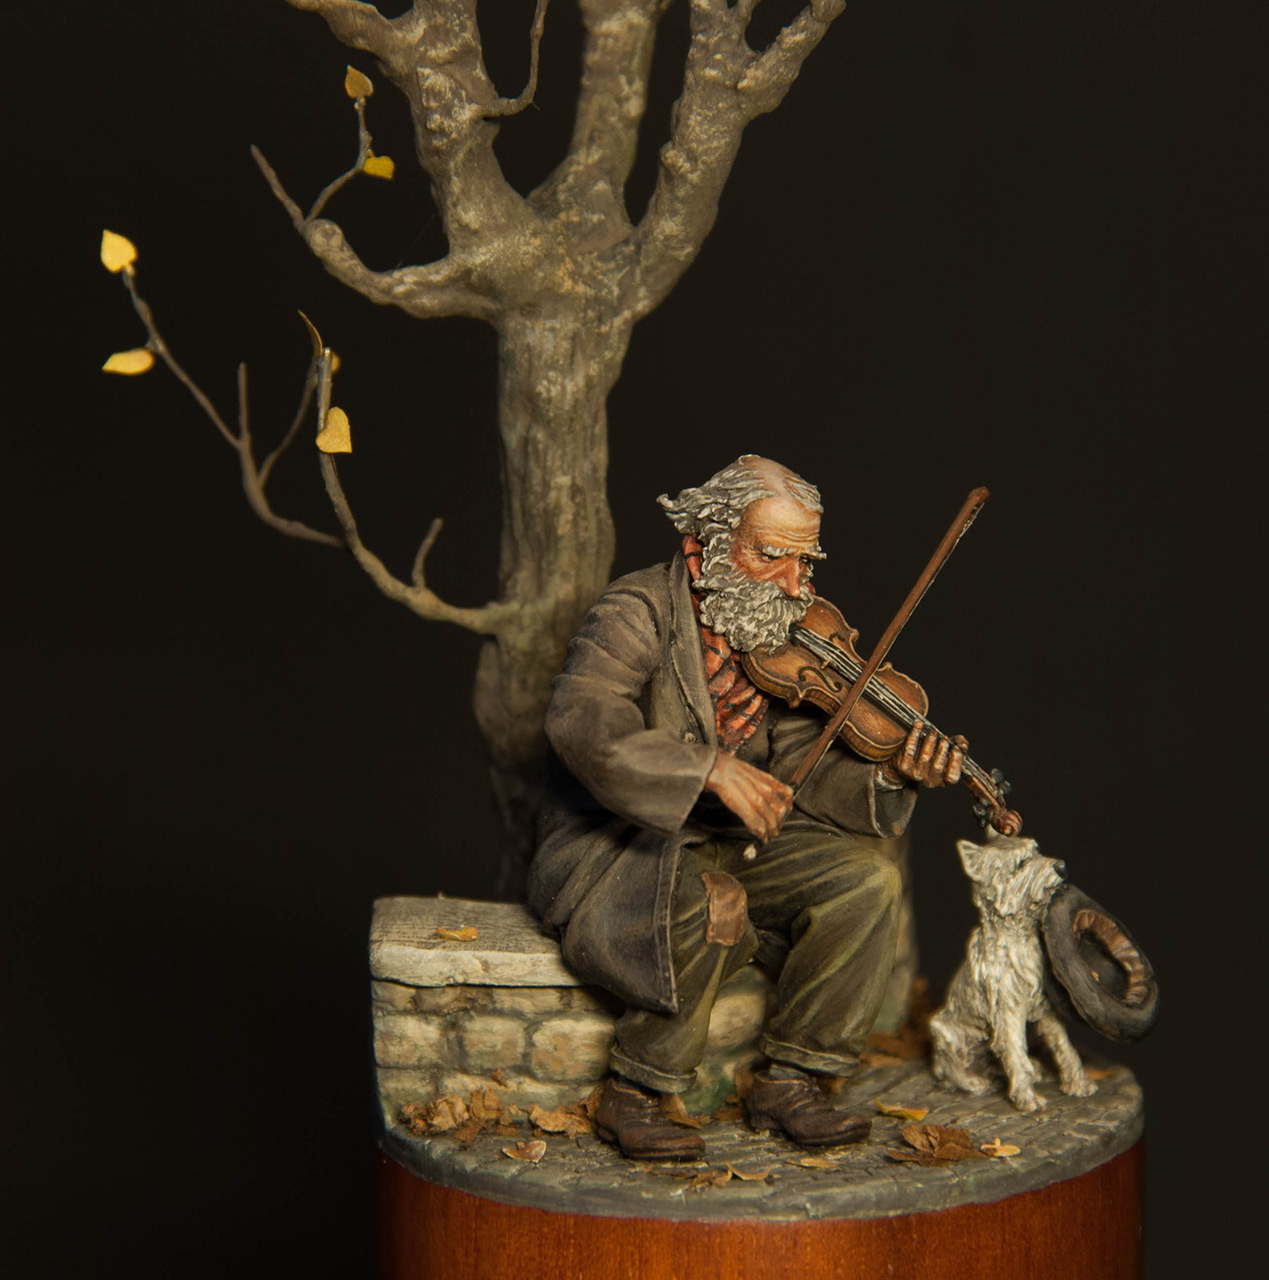 Dioramas and Vignettes: The old fiddler, photo #2